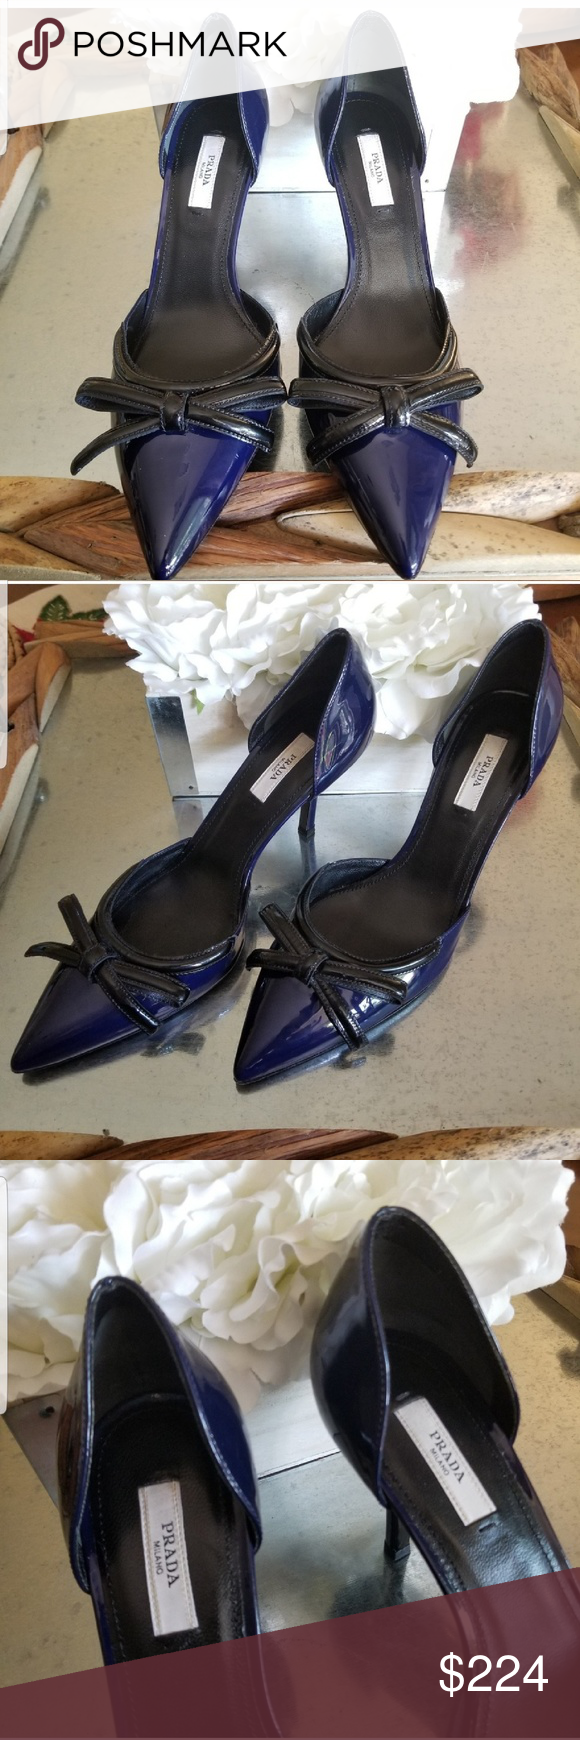 ad06d407fe5 Prada Bow Navy Blue Black Patent Leather Heels 9 Prada Navy Blue Bow with Black  Patent